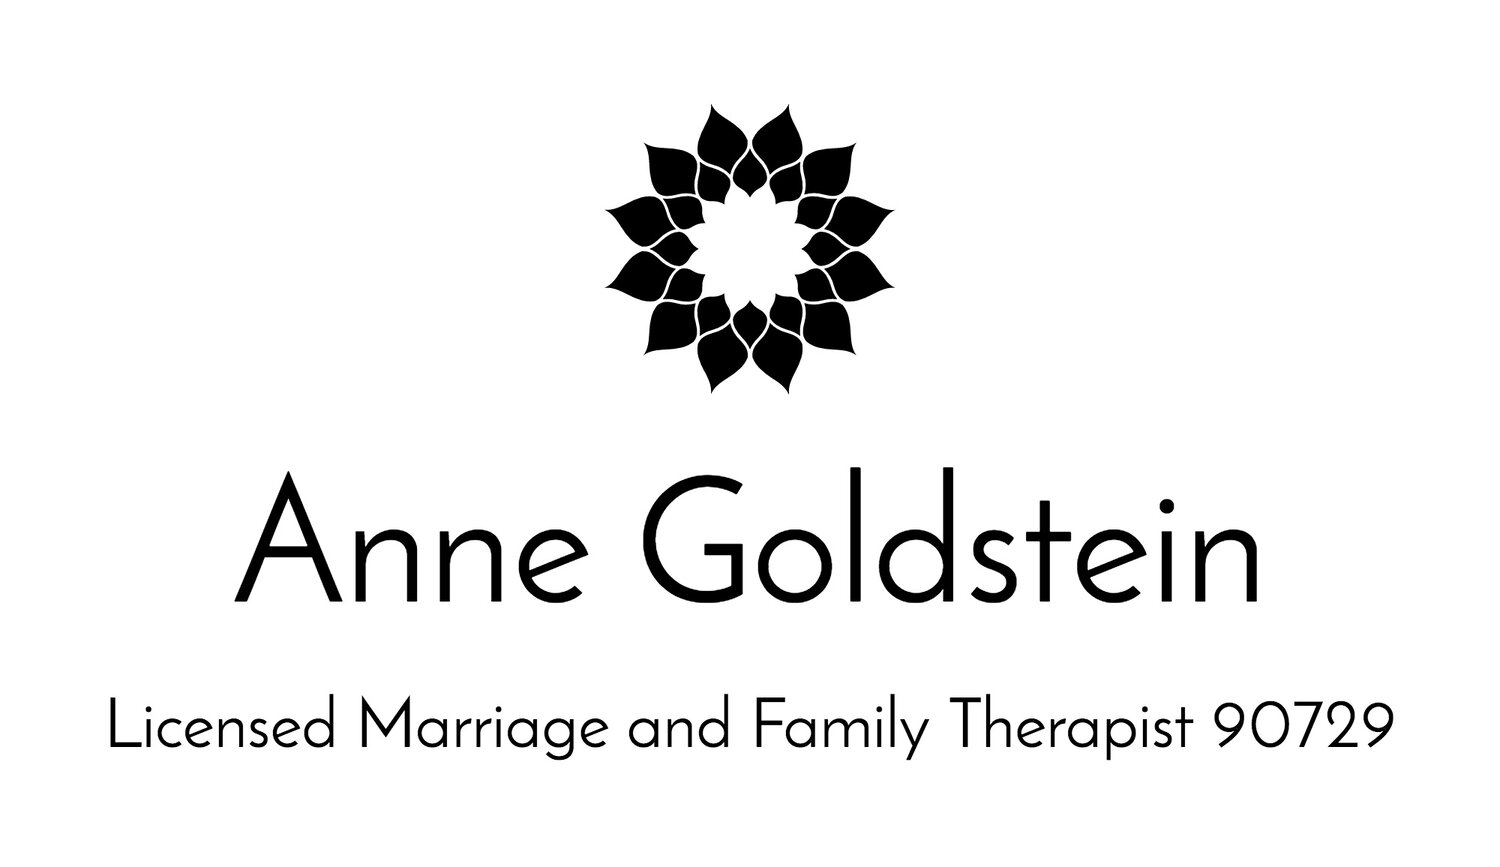 Annie Goldstein,  Licensed Marriage and Family Therapist 90729